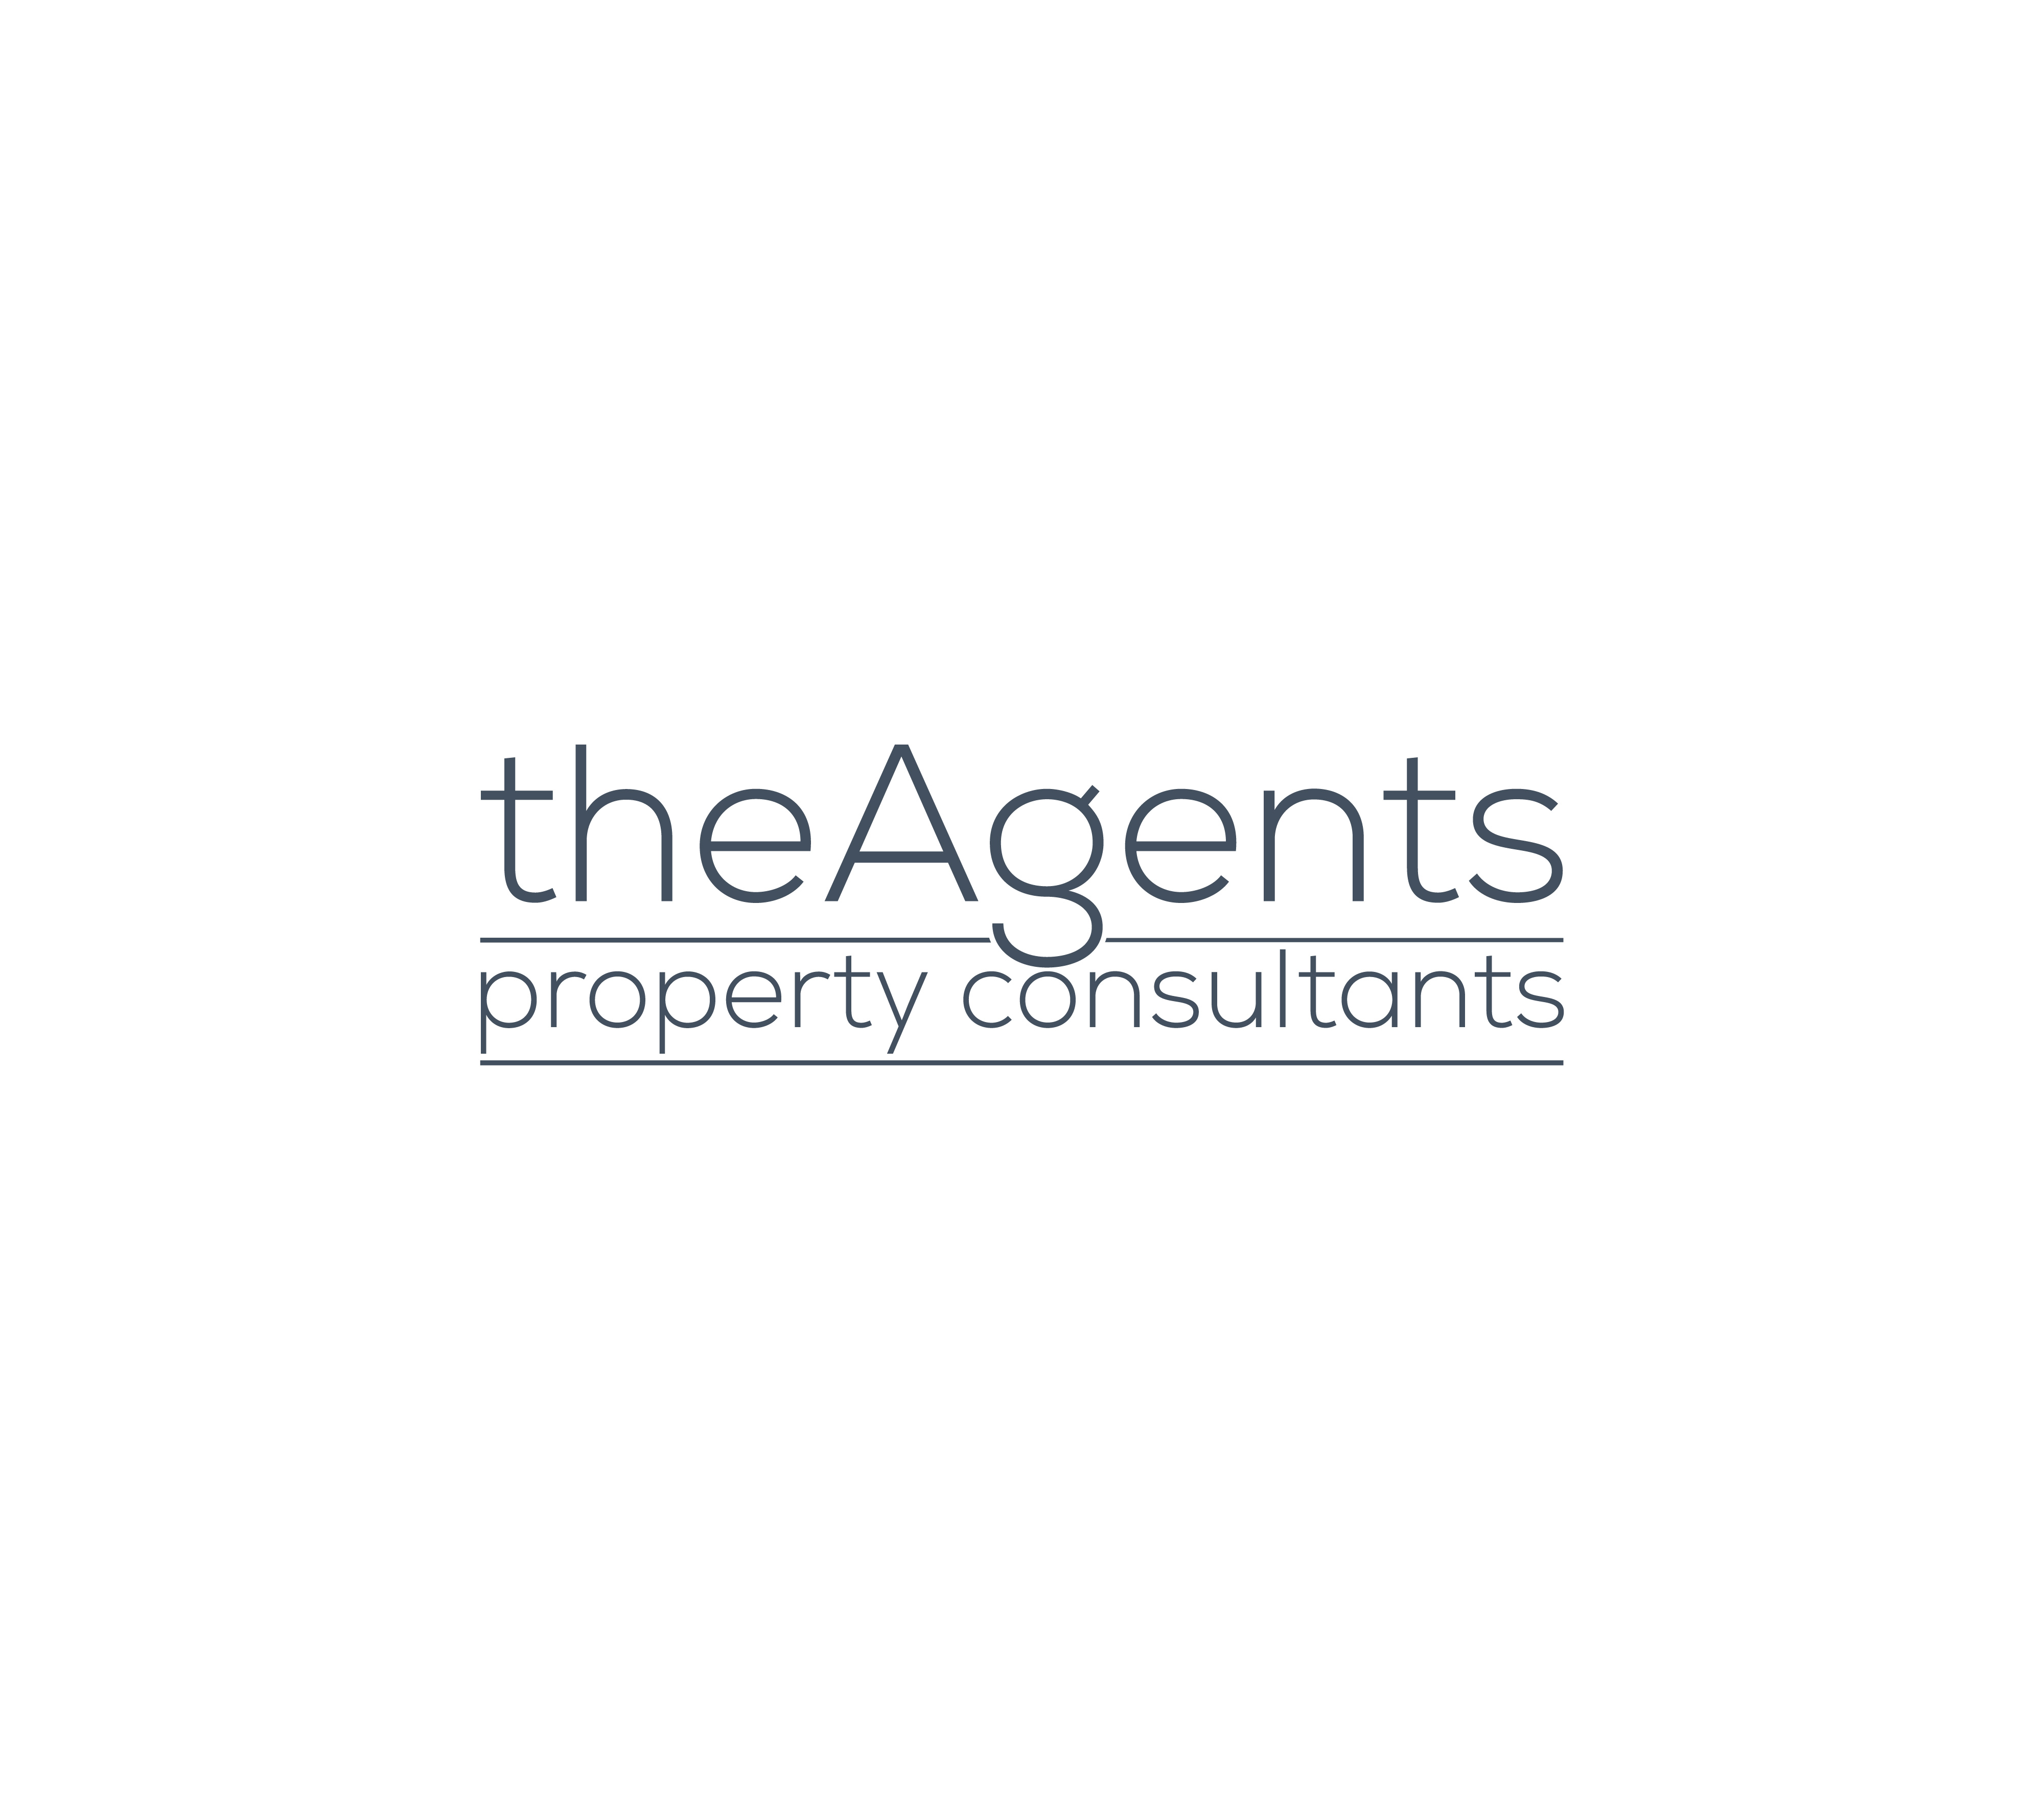 The Agent Property Consultants Ltd